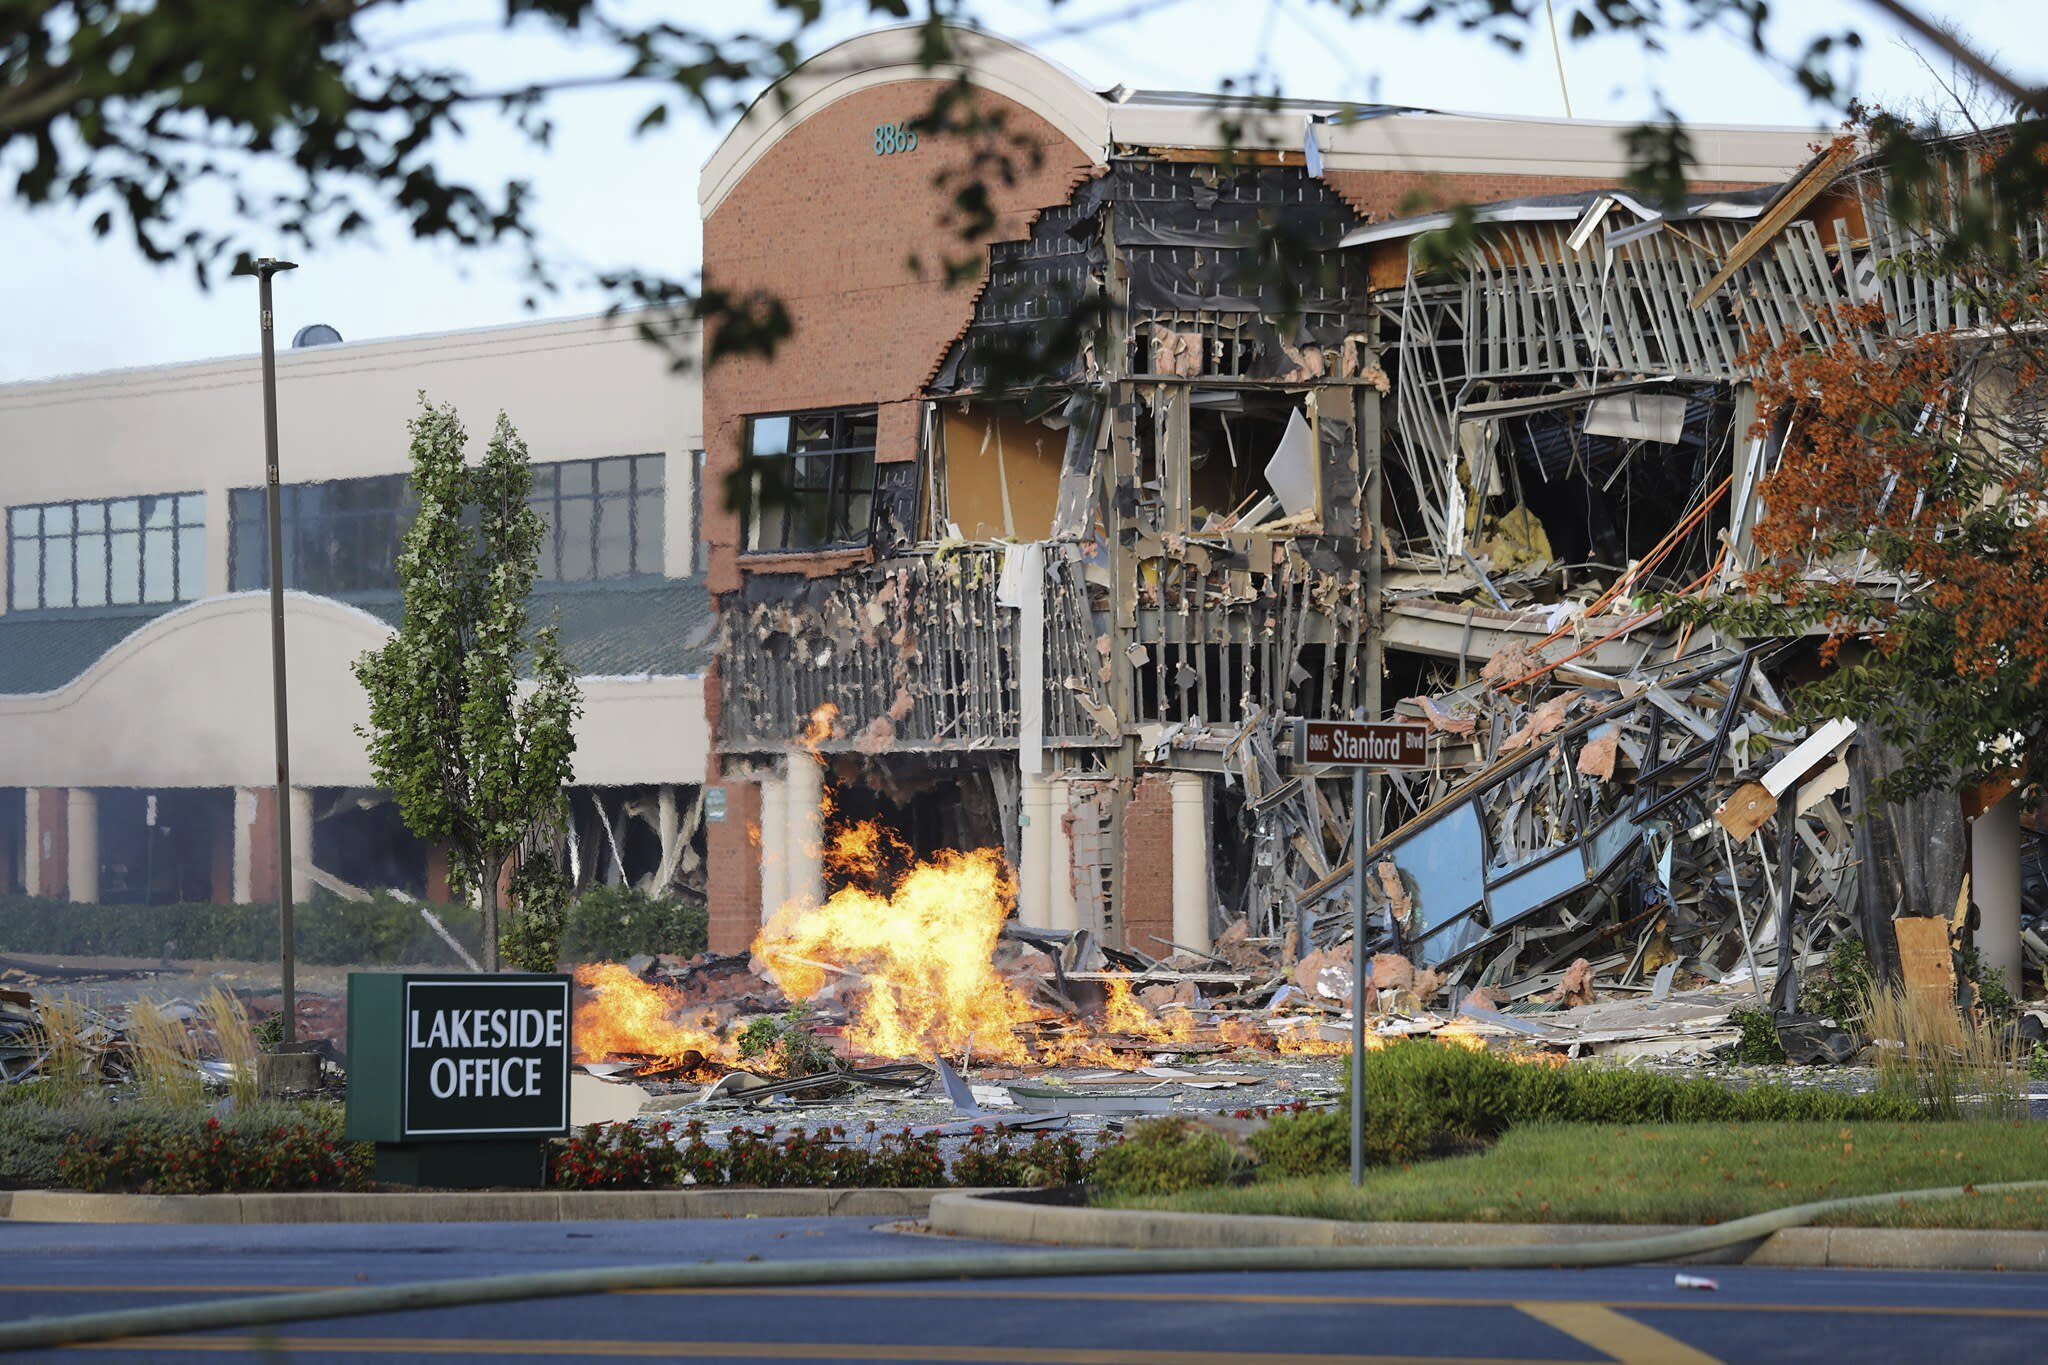 Fire officials investigate gas explosion in Columbia business area